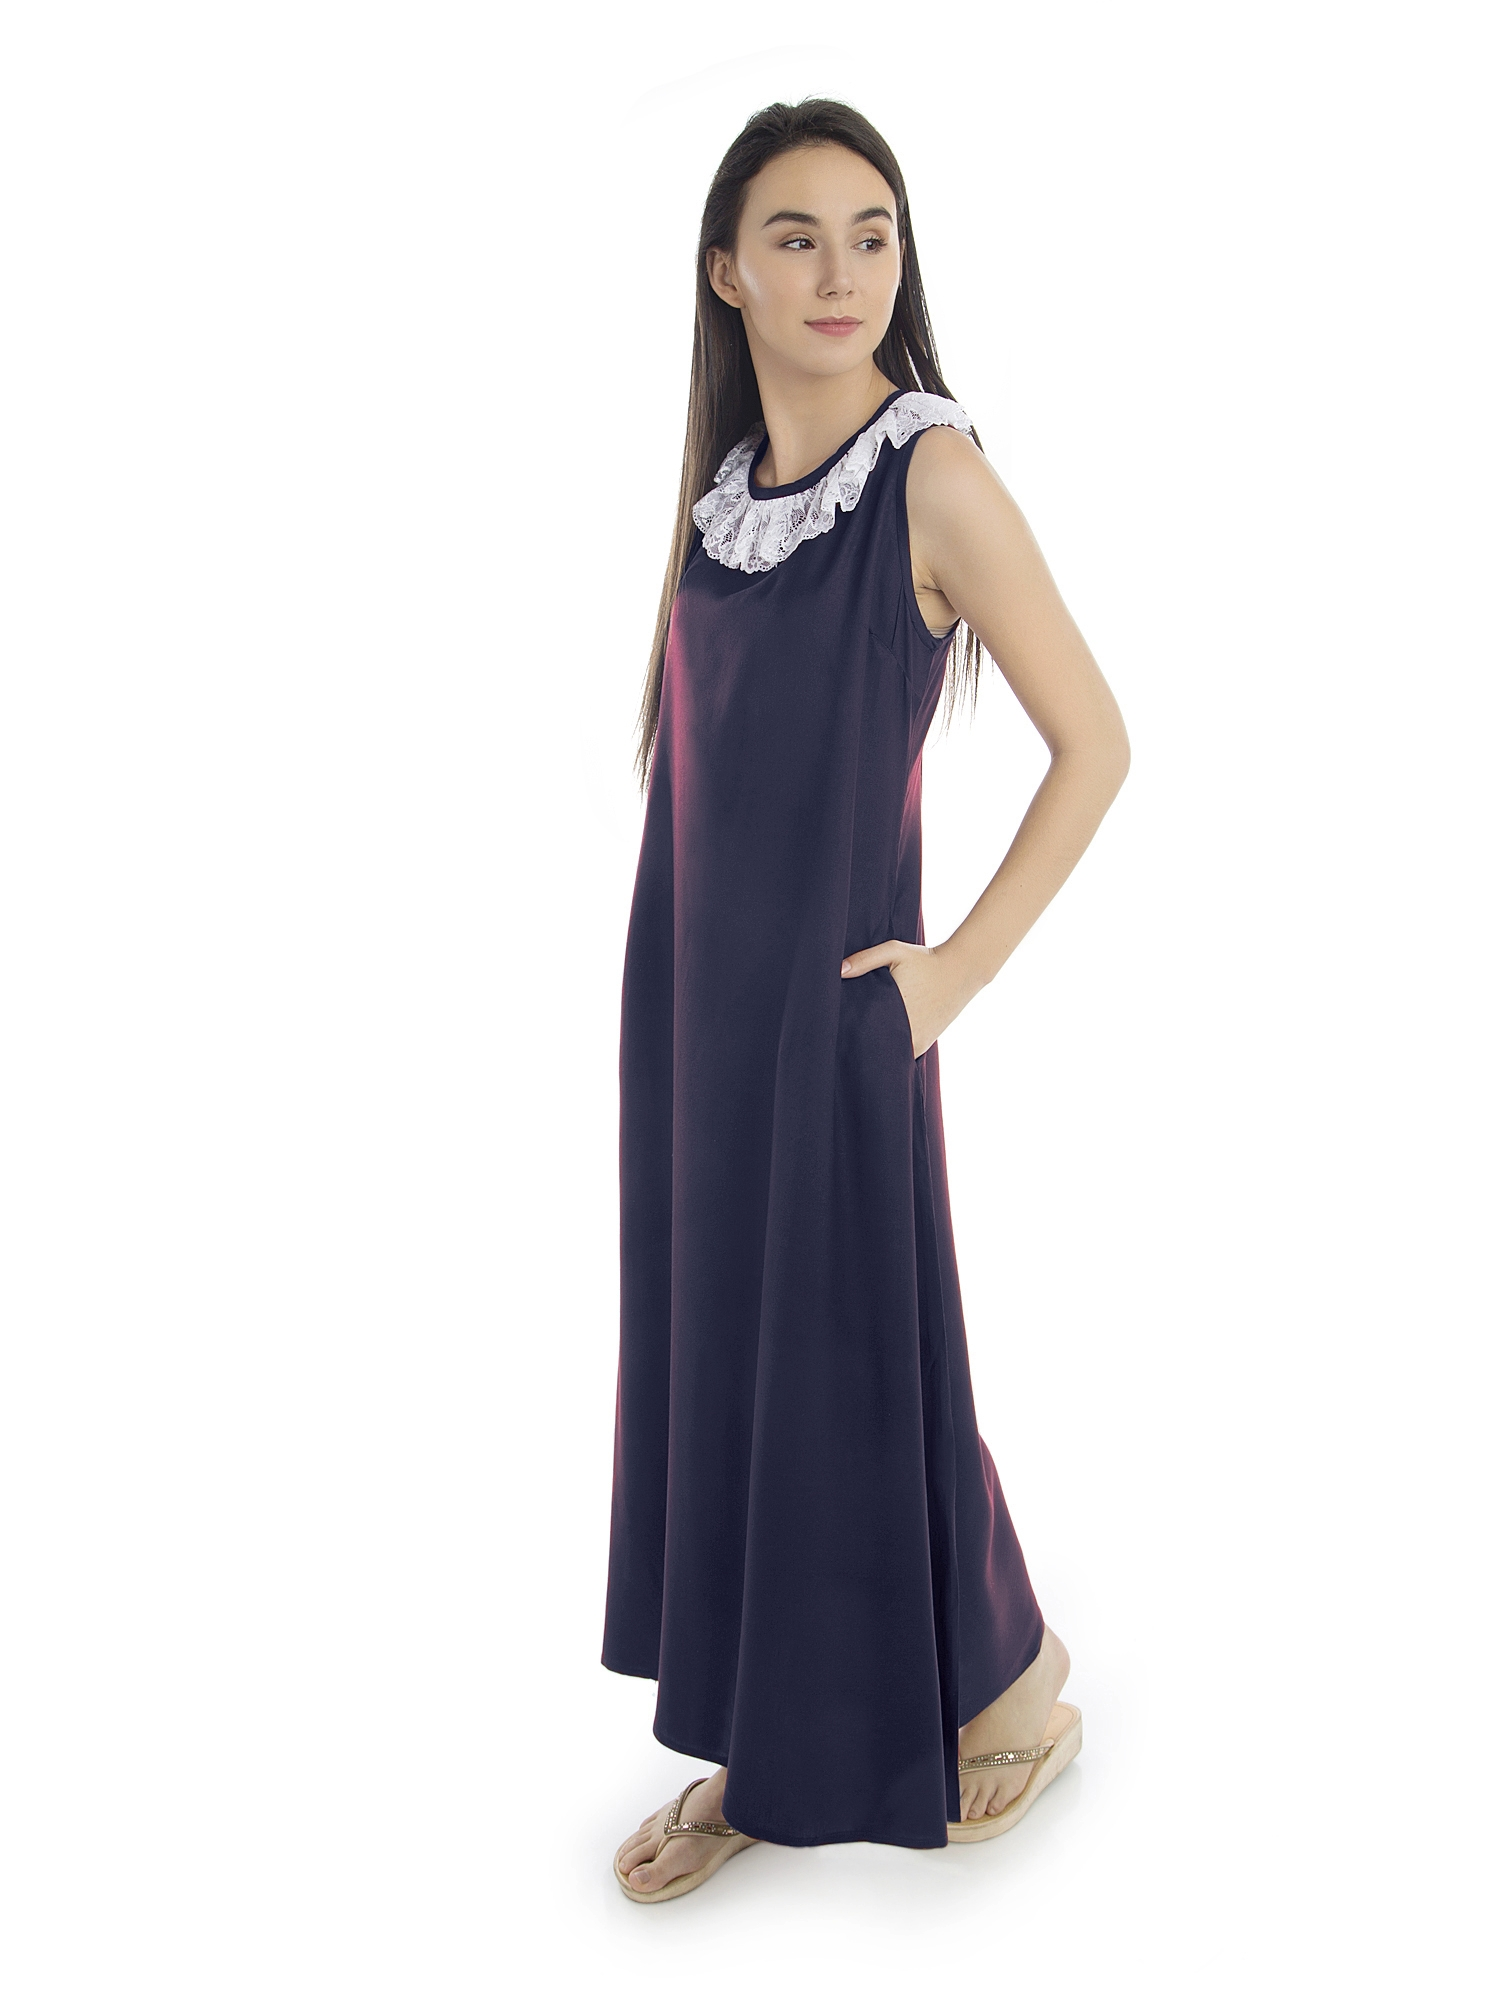 Round Lace Embellished Neck Maxi Nighty in Dark Blue